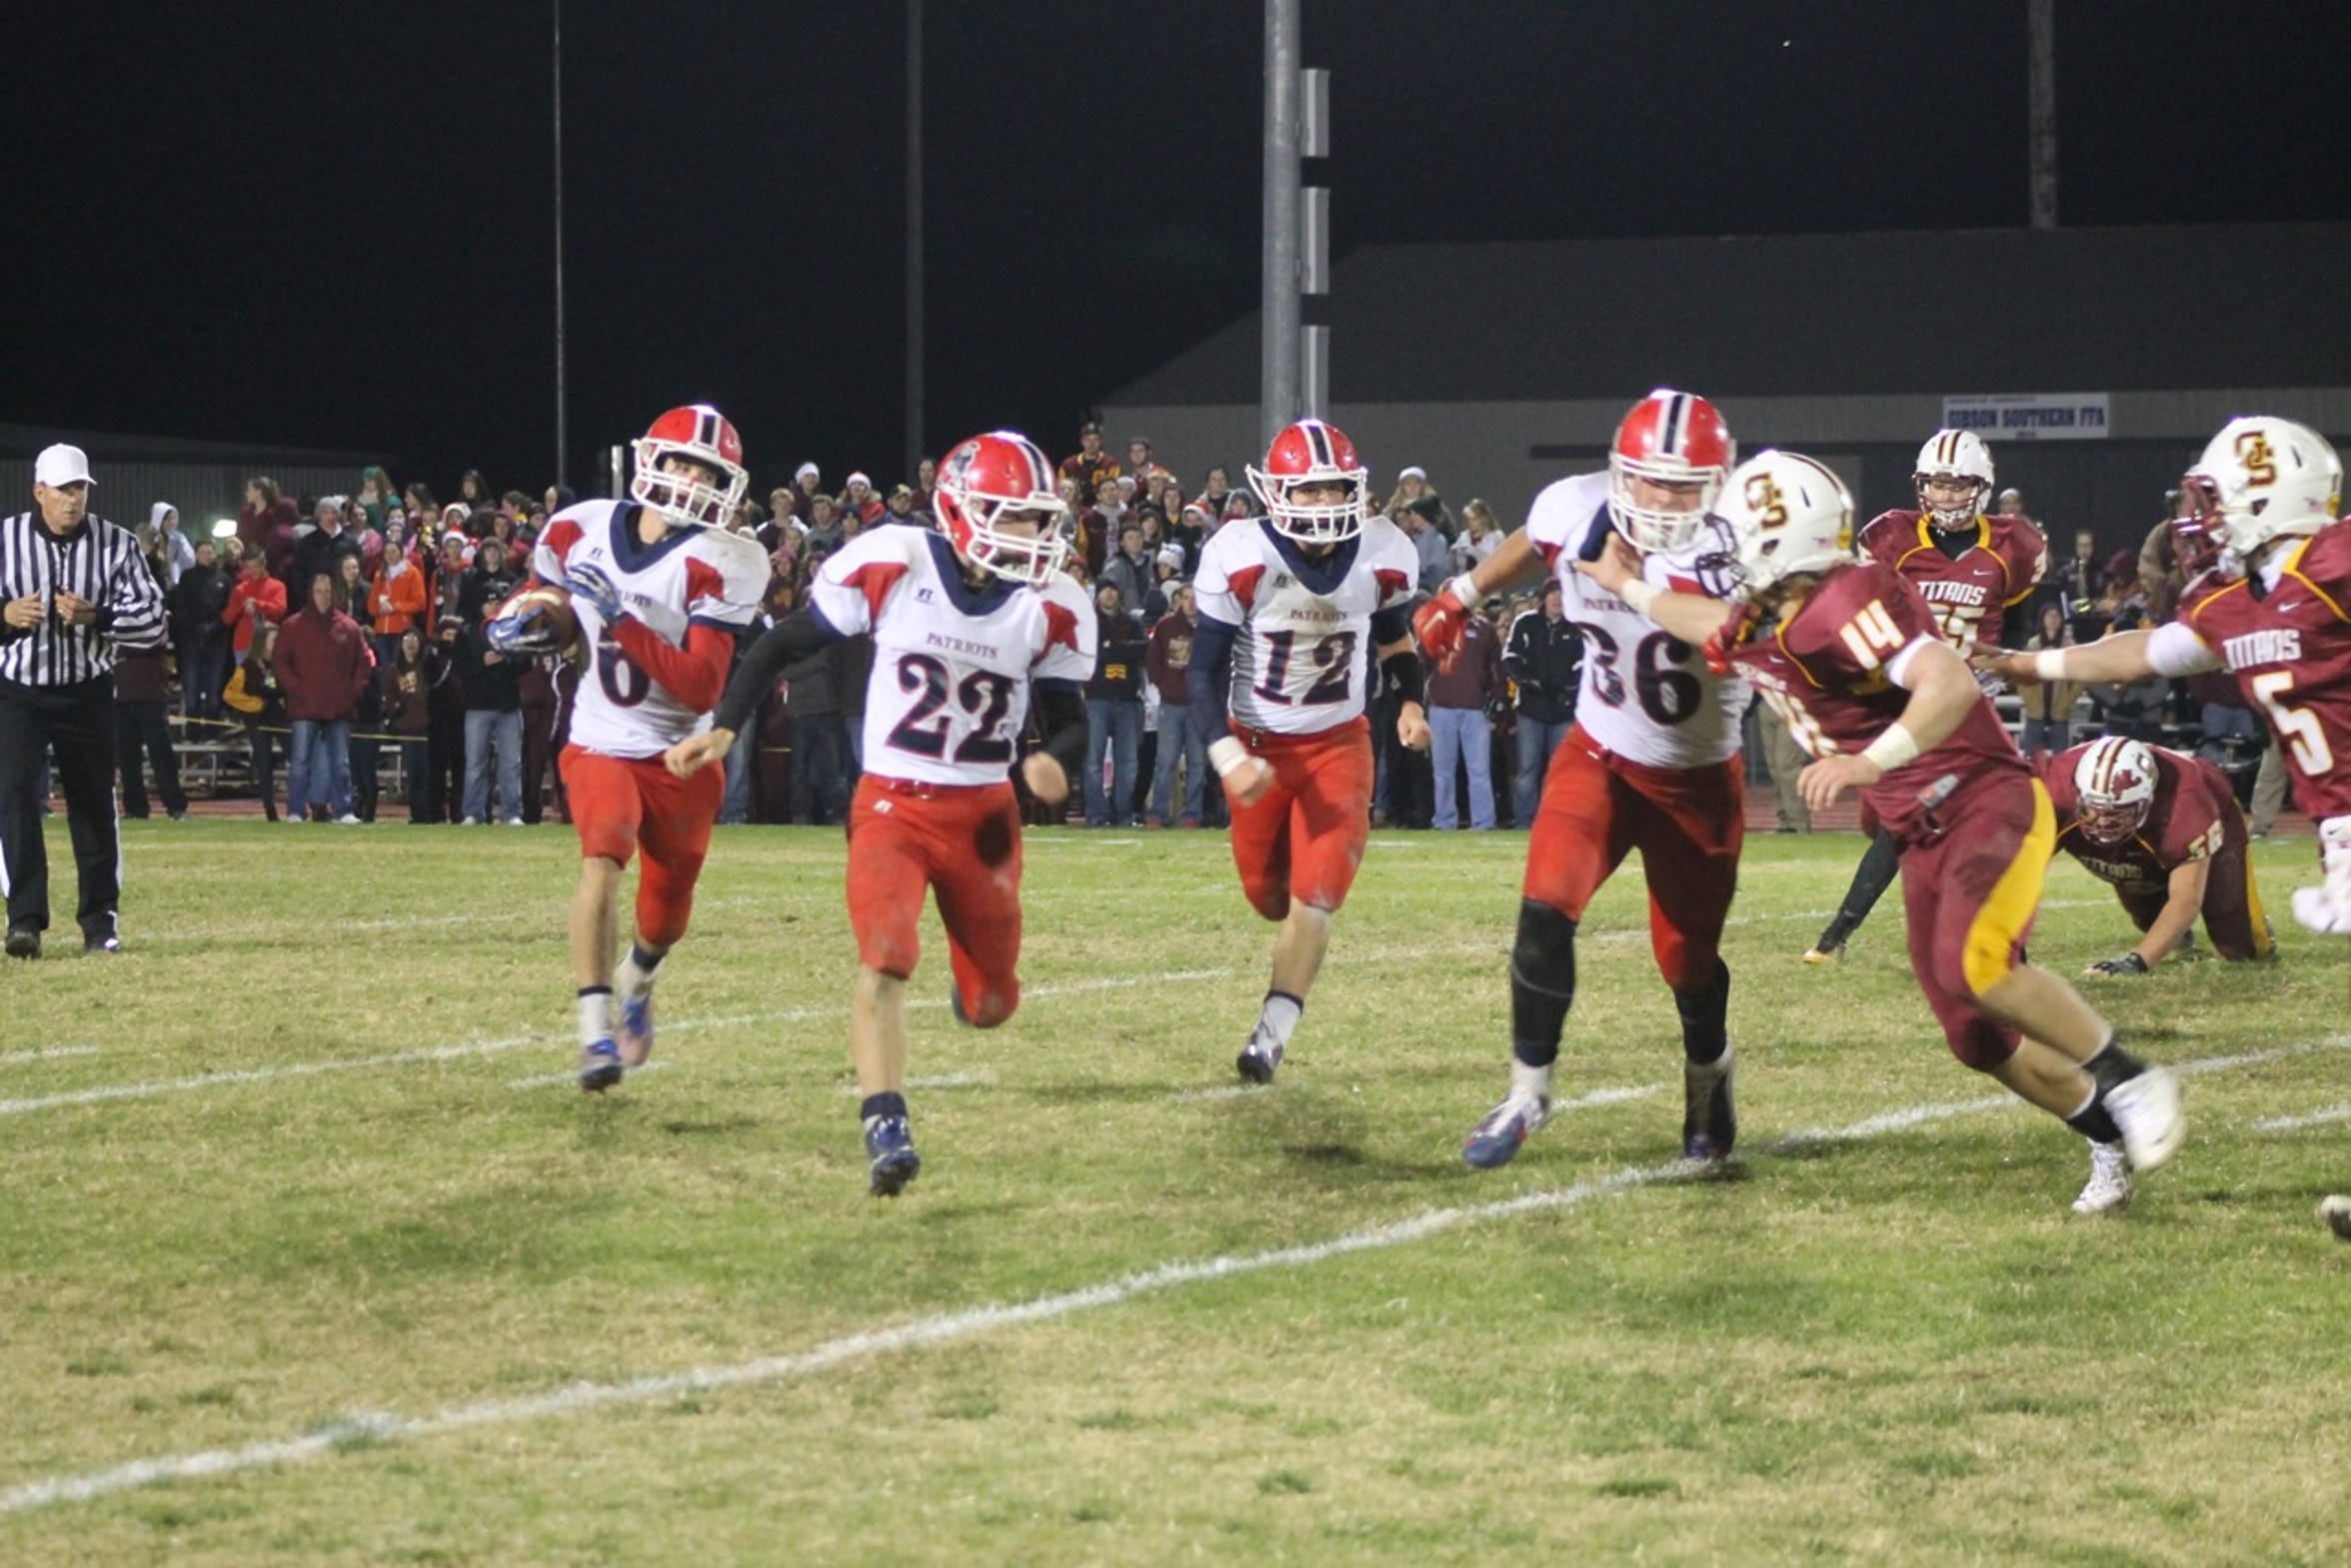 Heritage Hills and Gibson Southern played in the 2014 Class 3A Sectional 32 championship. It was a rematch from earlier in the year, with the Patriots winning in the tournament, 14-13, on Nov. 7.